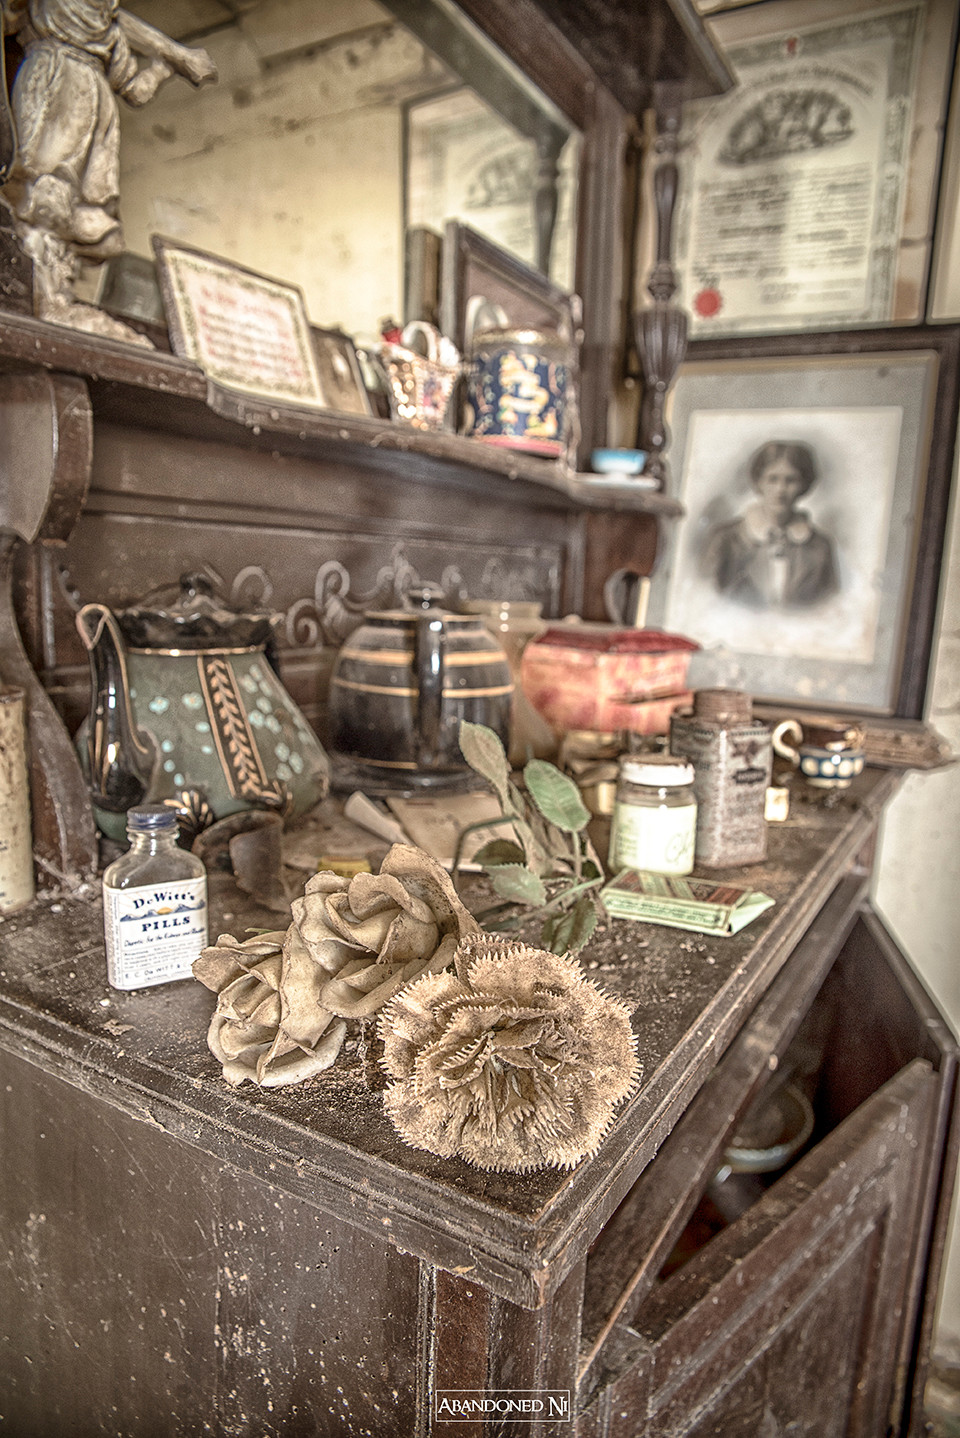 A dresser unit with various antique items to include a box of Woodbine Ciggerettes